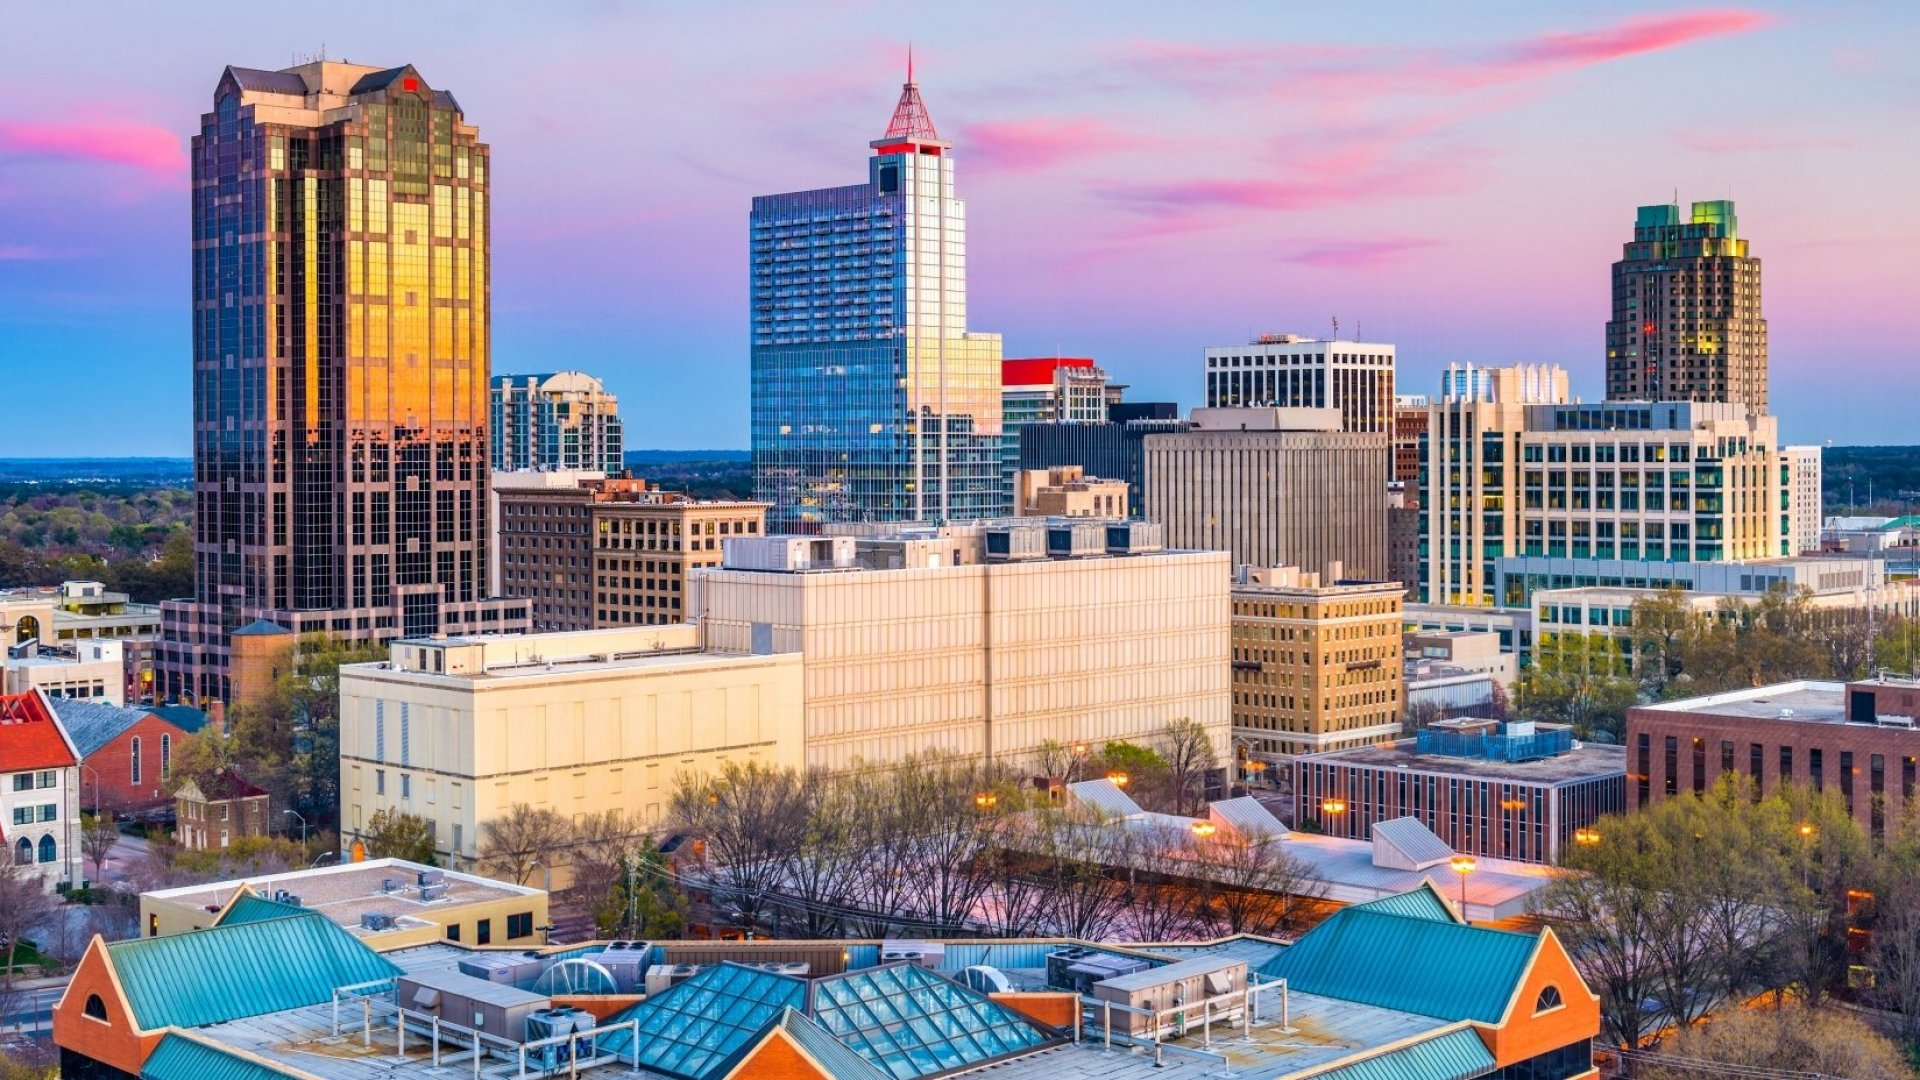 These Are The Best Cities for Jobs in 2020 According to Glassdoor